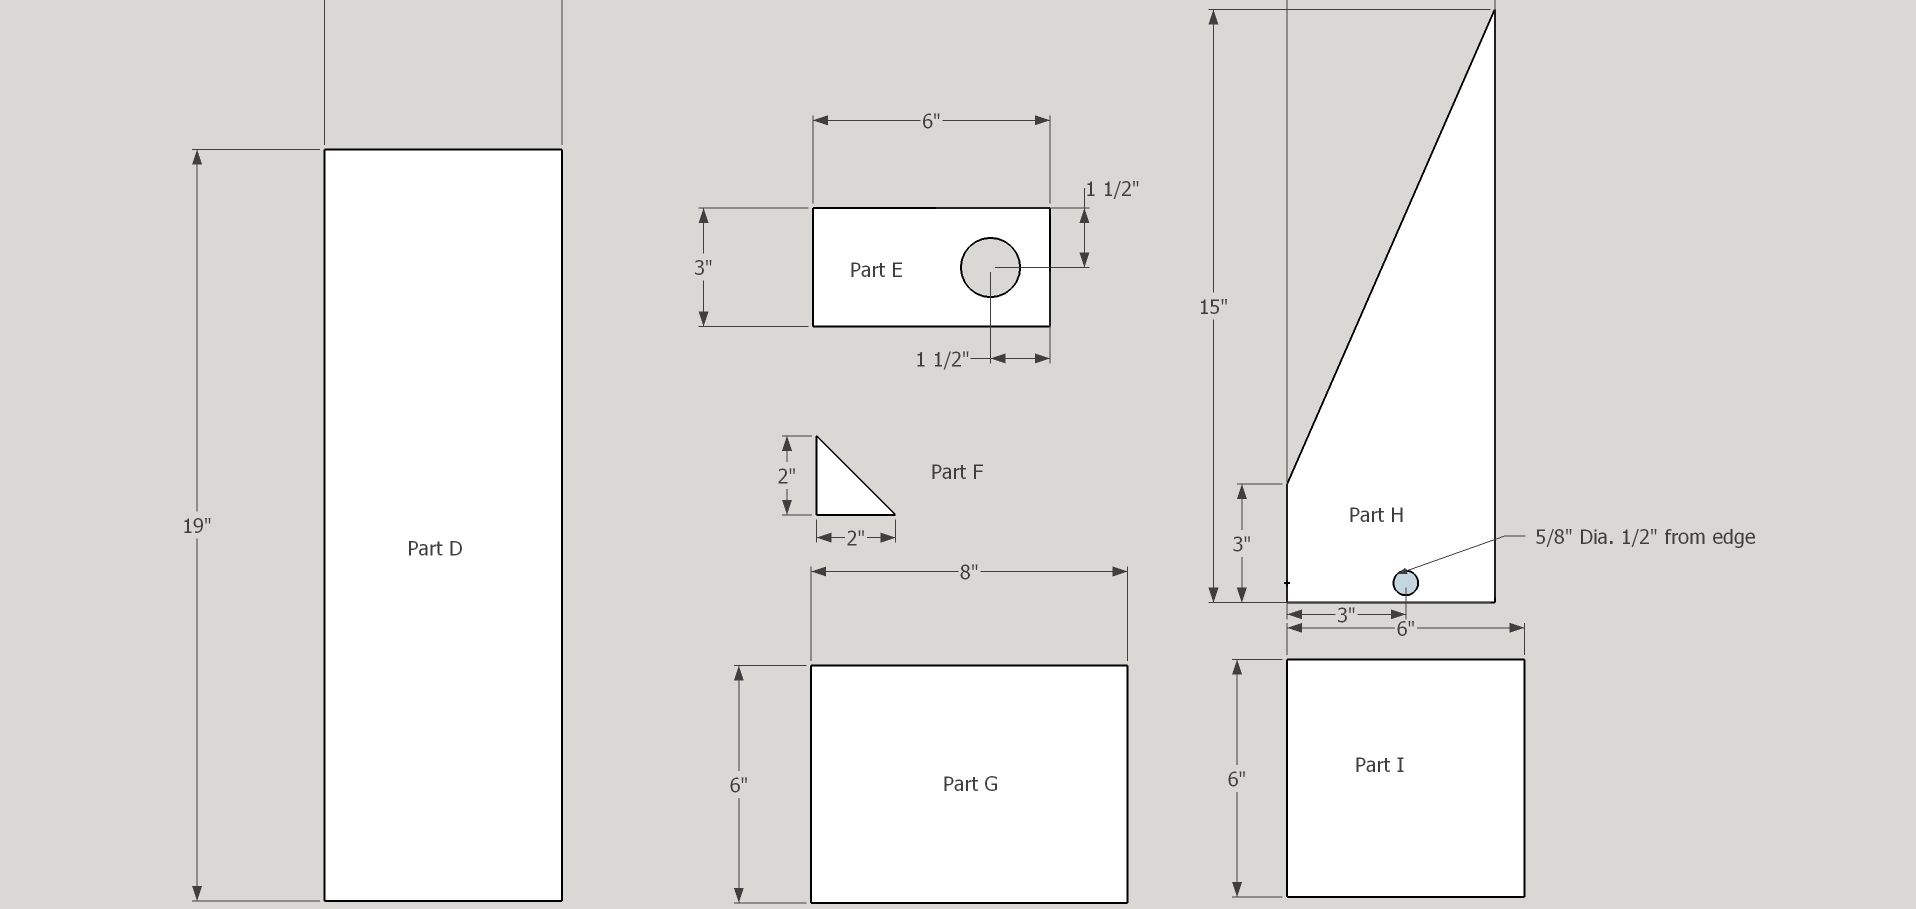 cnc X and Y axis plan | ПЕНОРЕЗКА ЧПУ | Pinterest | CNC and Foam cutter